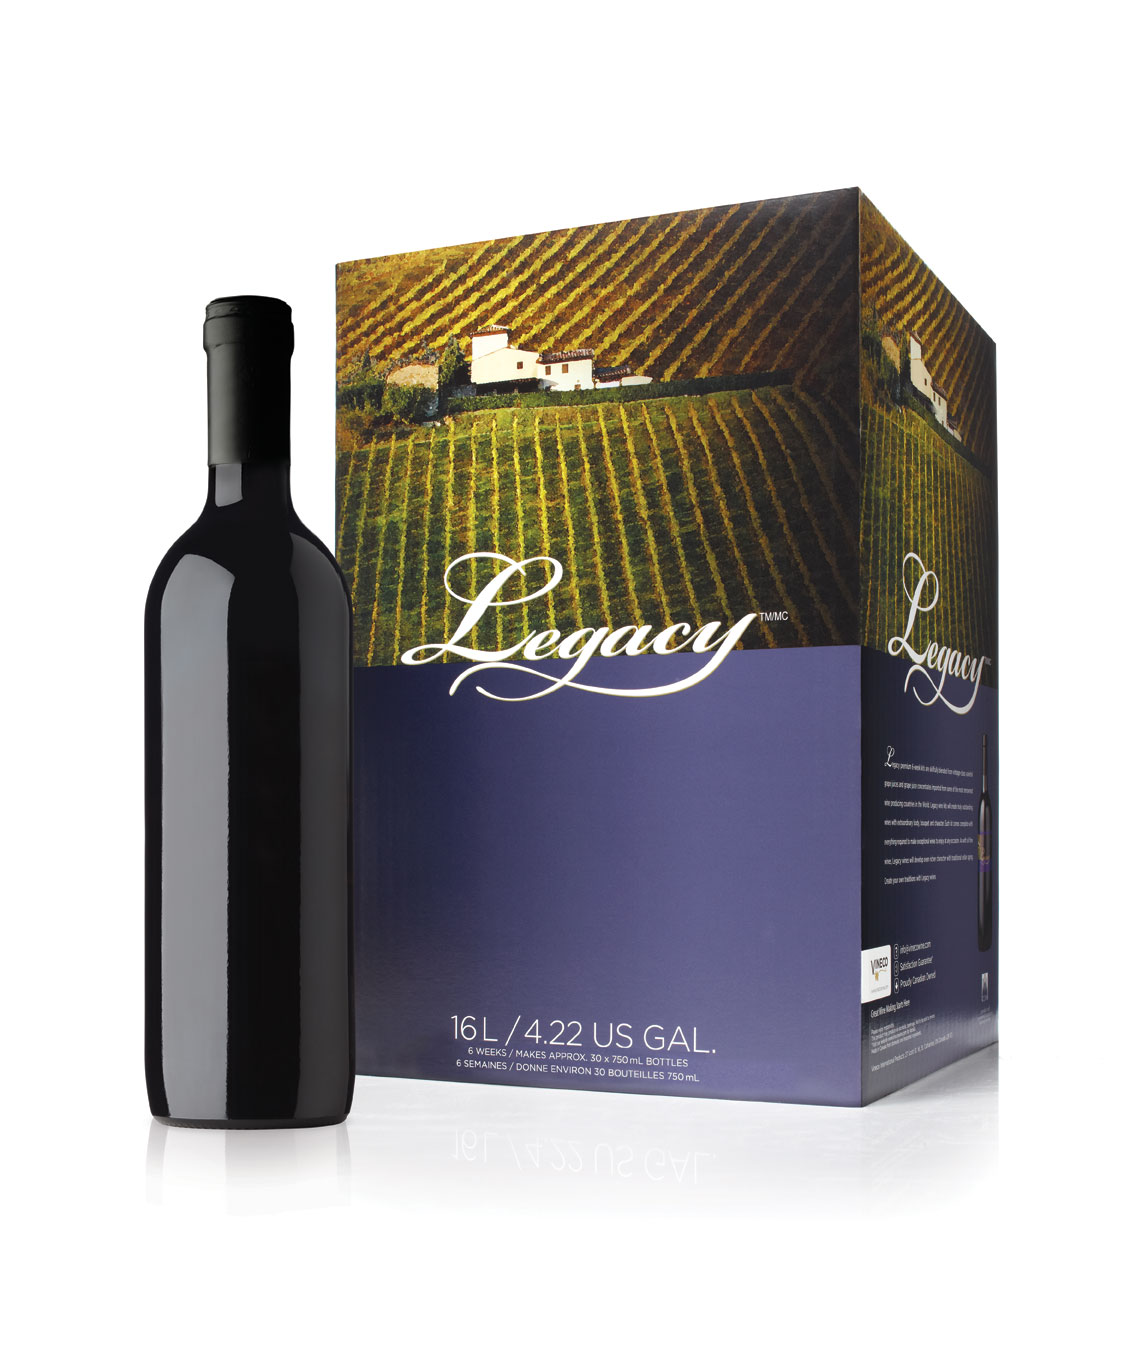 - Memorable moments, celebrations reminisced, traditions shared: these are the legacies of life and the sentiments personified in Legacy's premium wine kits. Their premium varietal grape juices and concentrates produce wines of distinction with outstanding body, bouquet, and character.